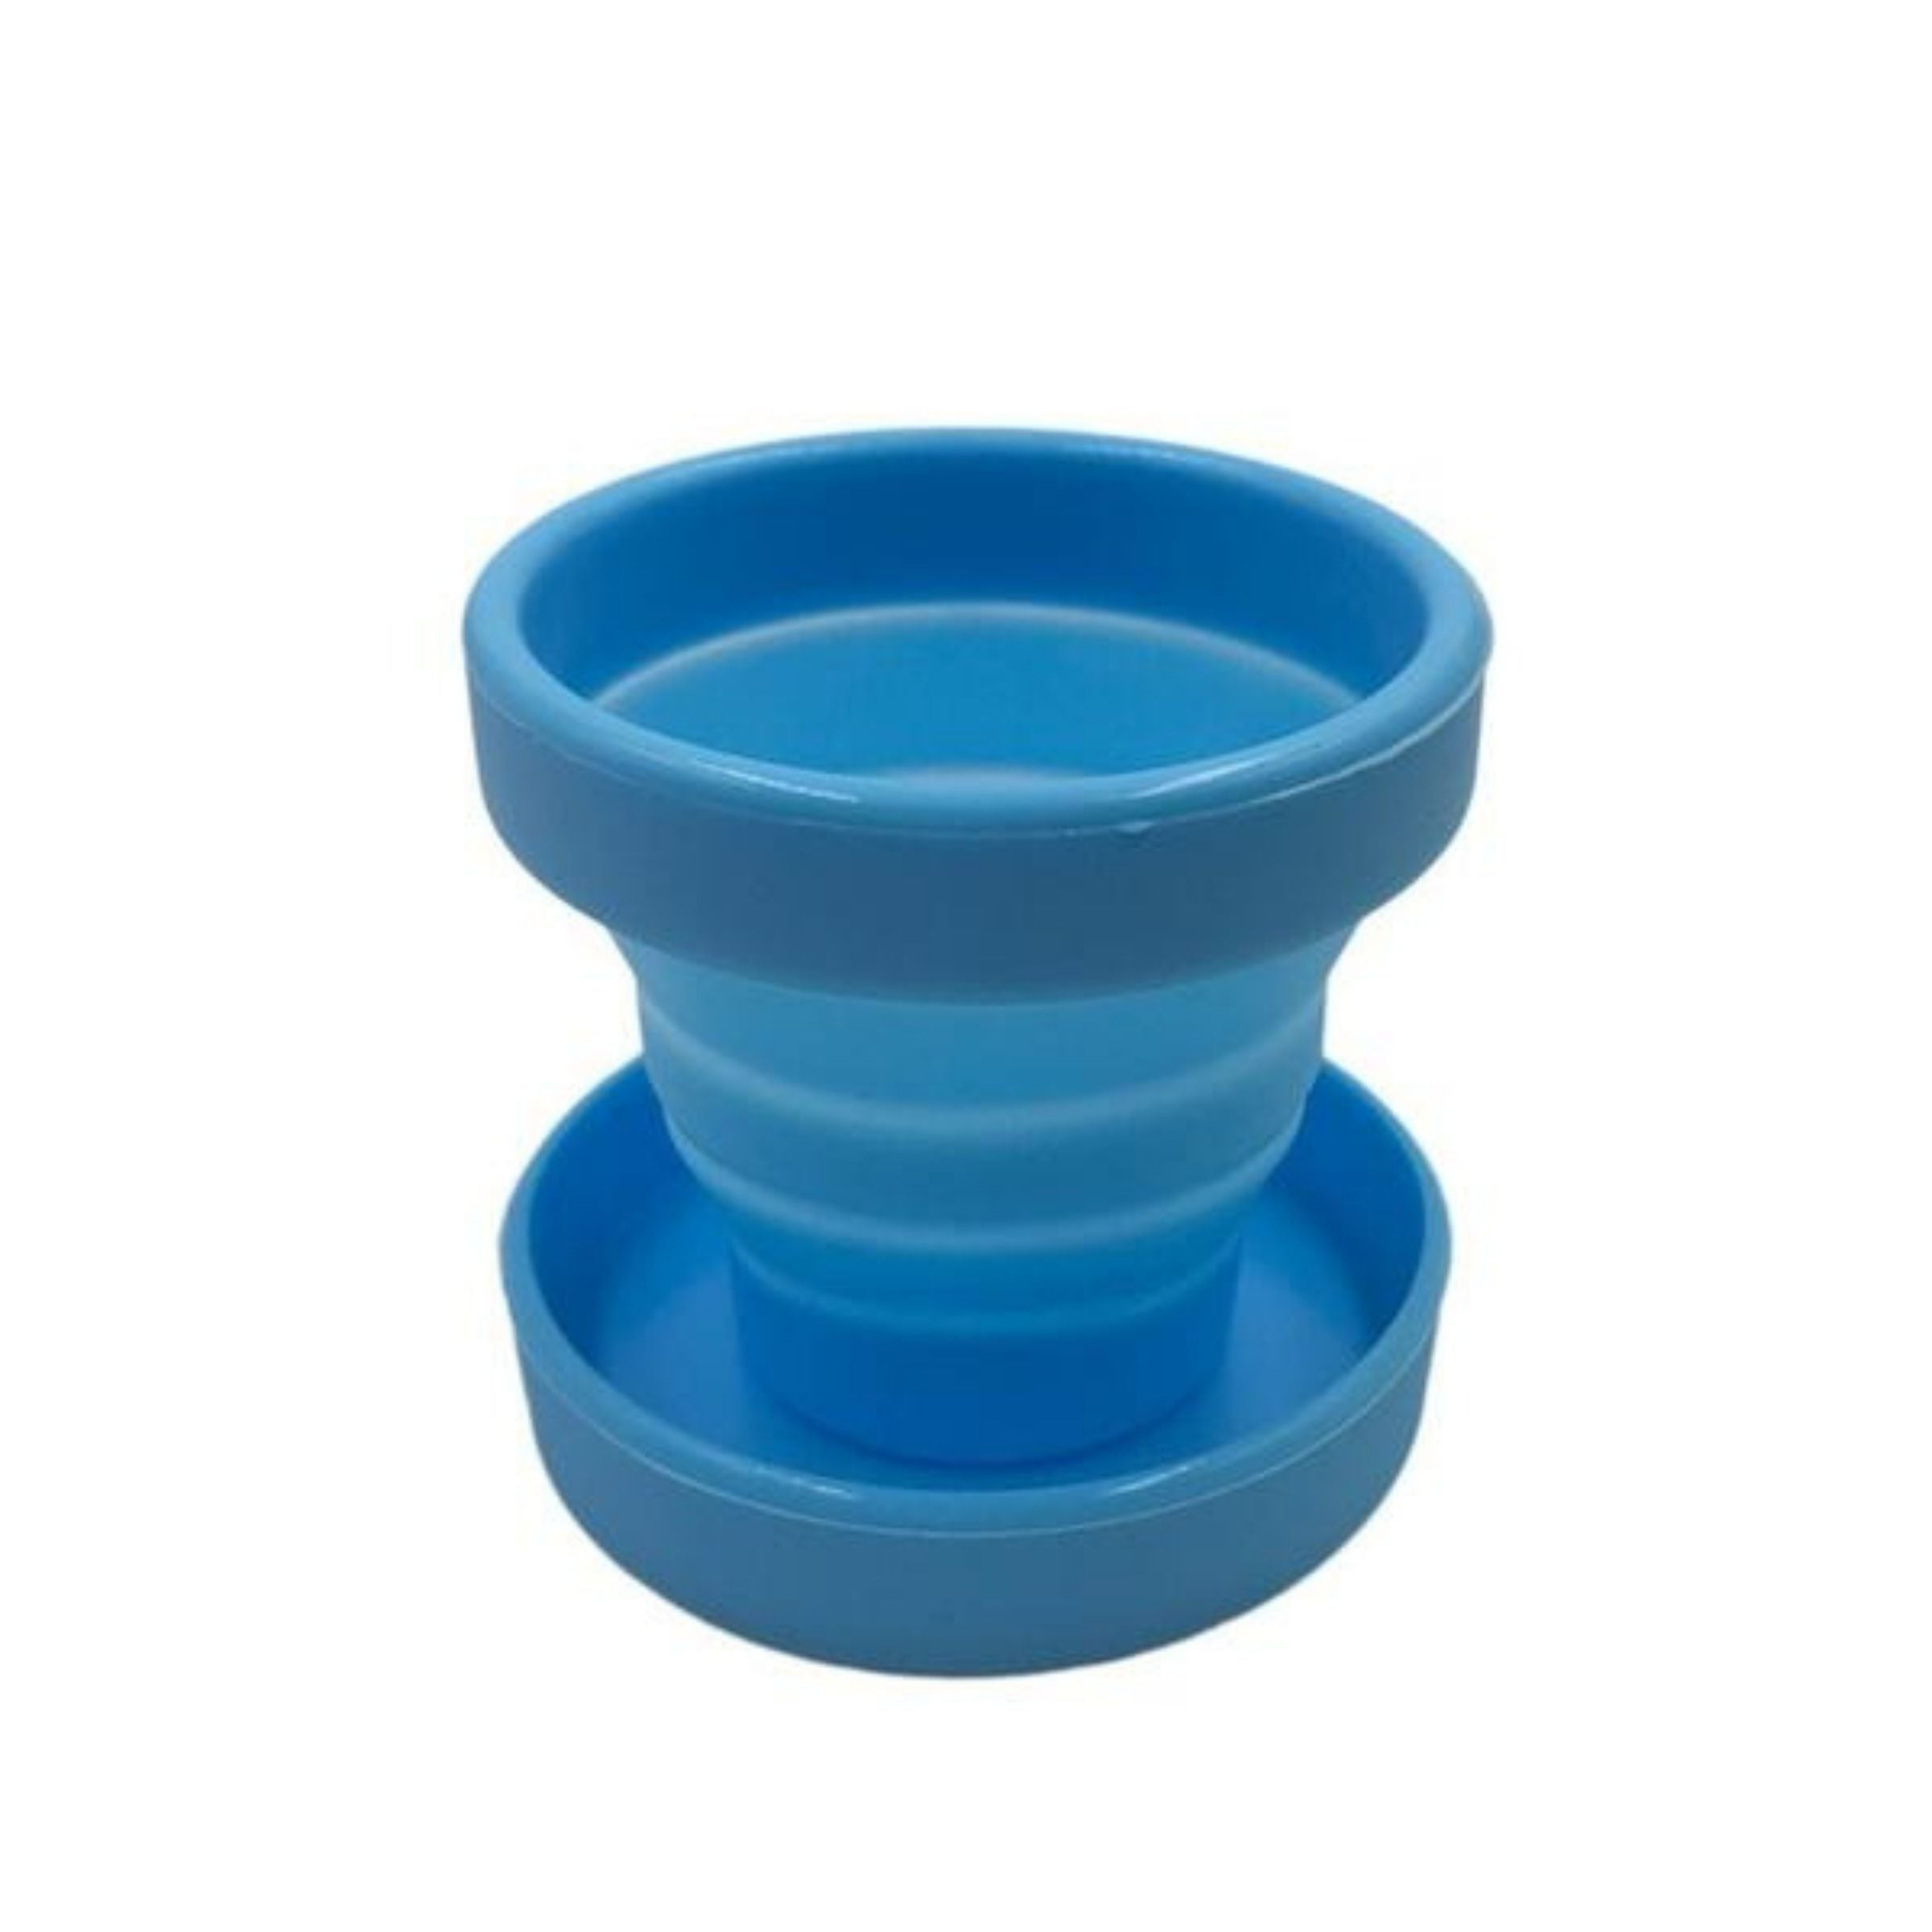 Menstrual Cups Sterilizer in blue